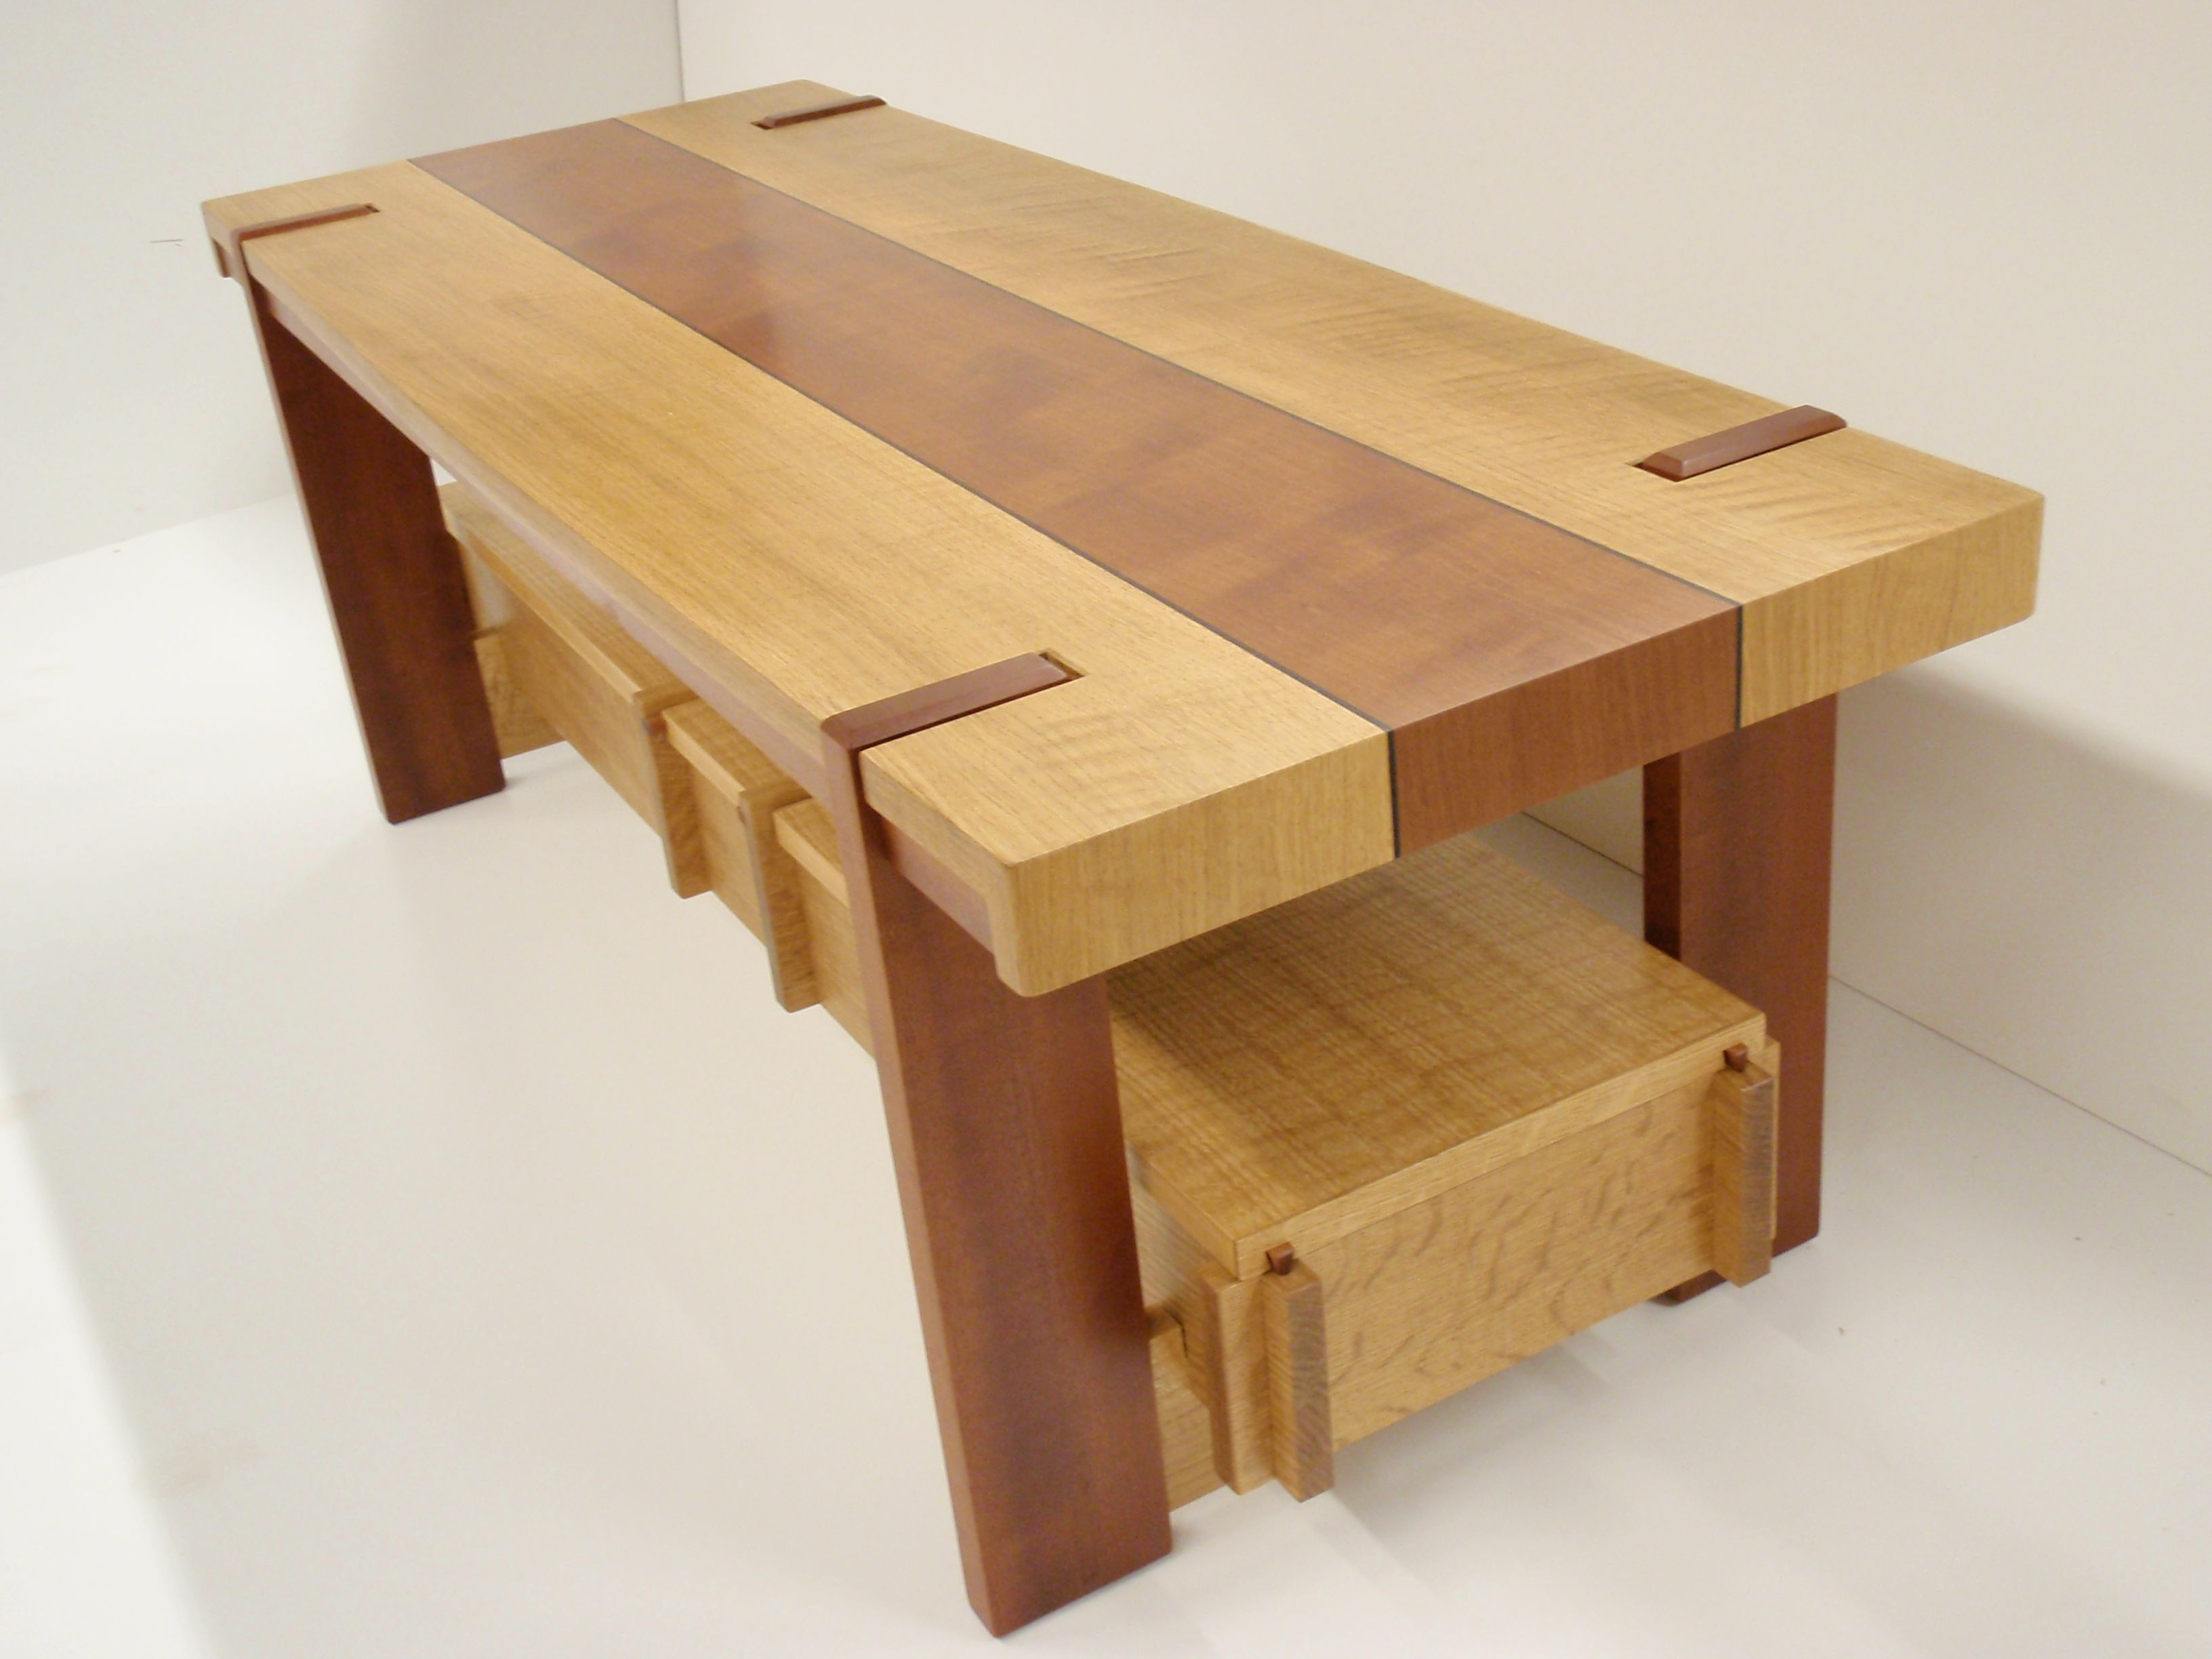 Cofee table in white oak and unknown secies with ebony inlays we love dc - Wood furniture design ...